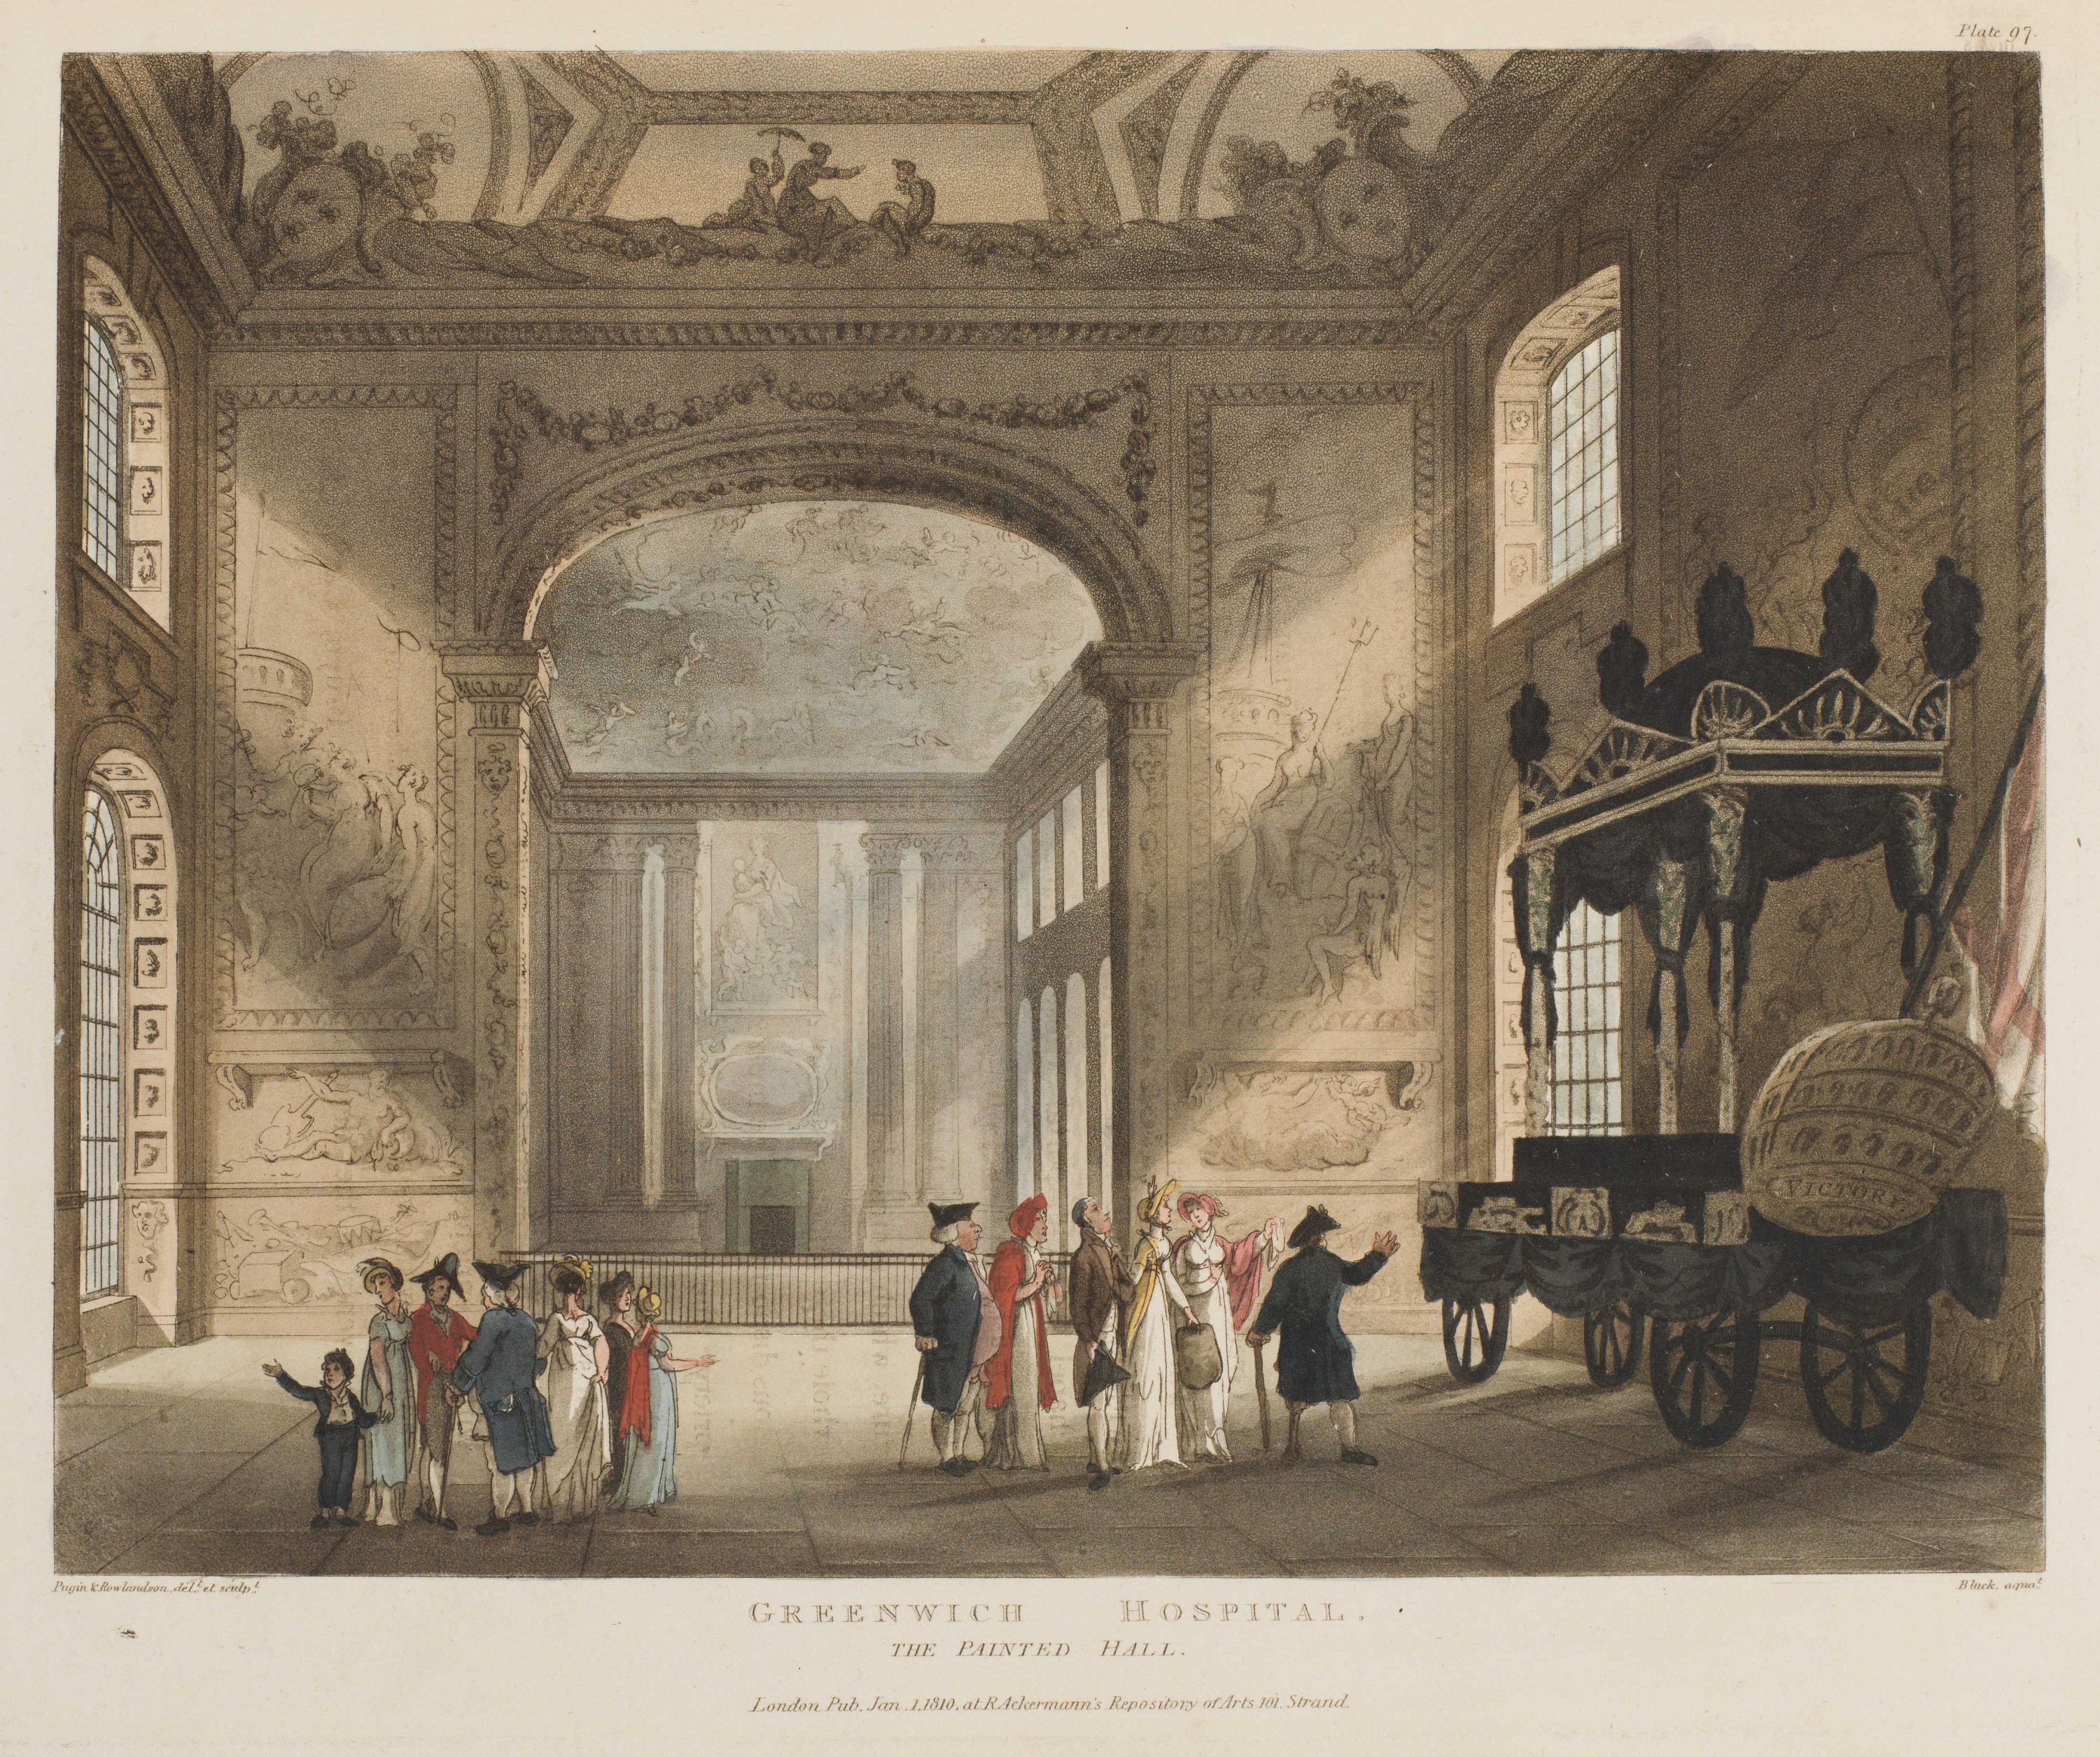 097 - Greenwich Hospital, The Painted Hall